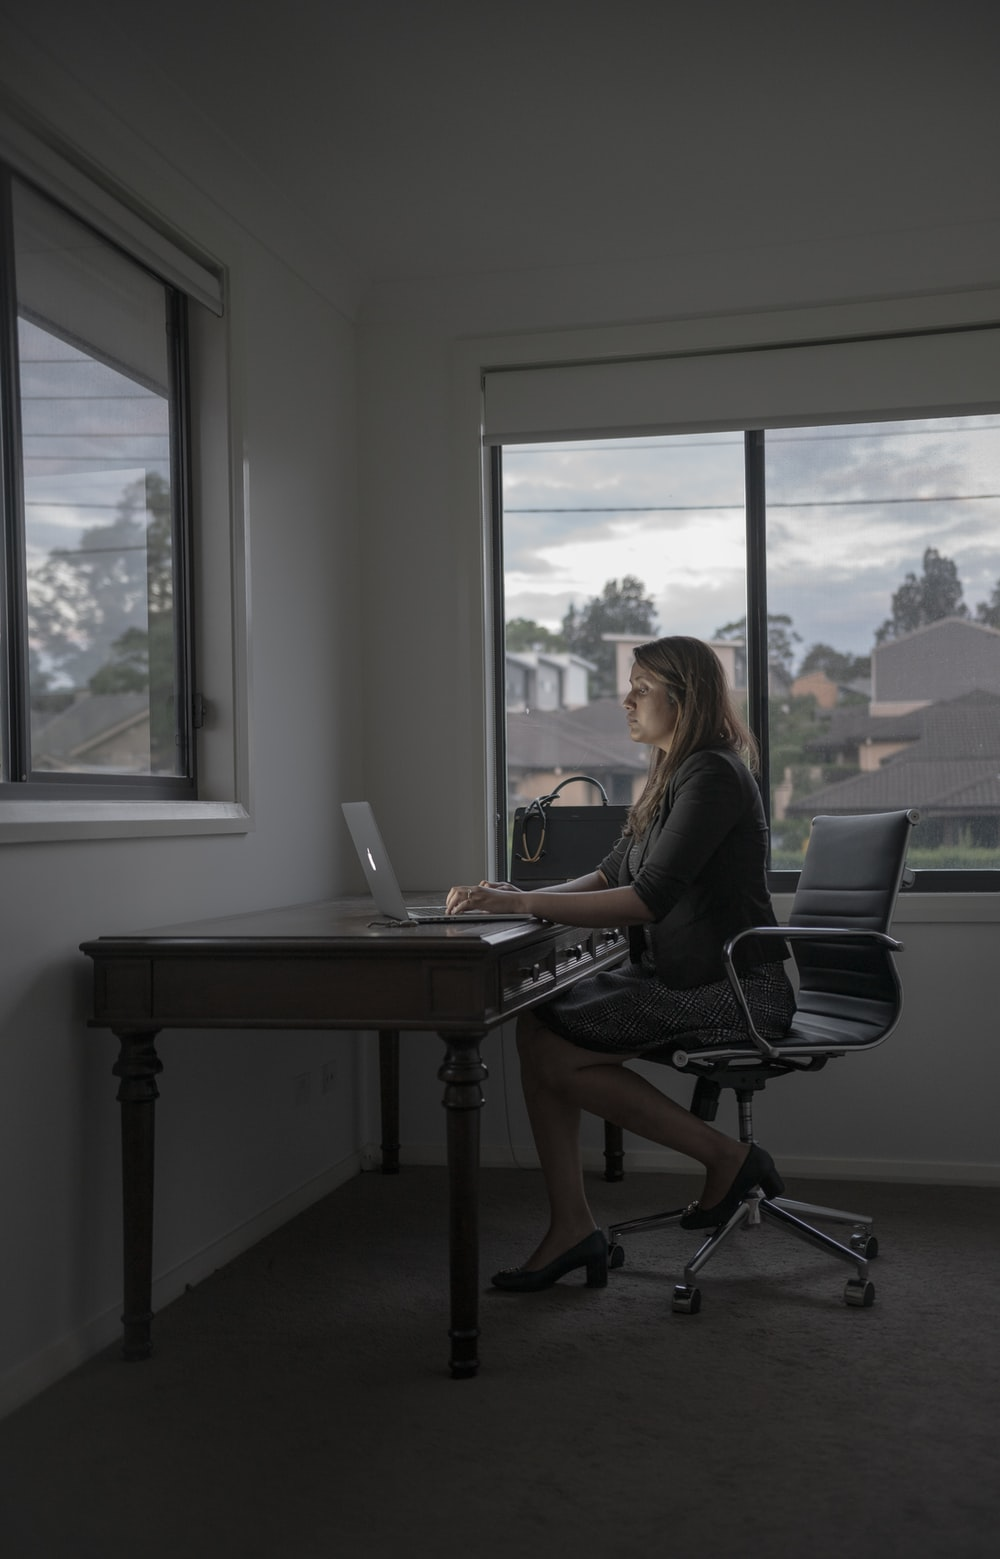 woman in black shirt sitting on black office rolling chair using laptop computer